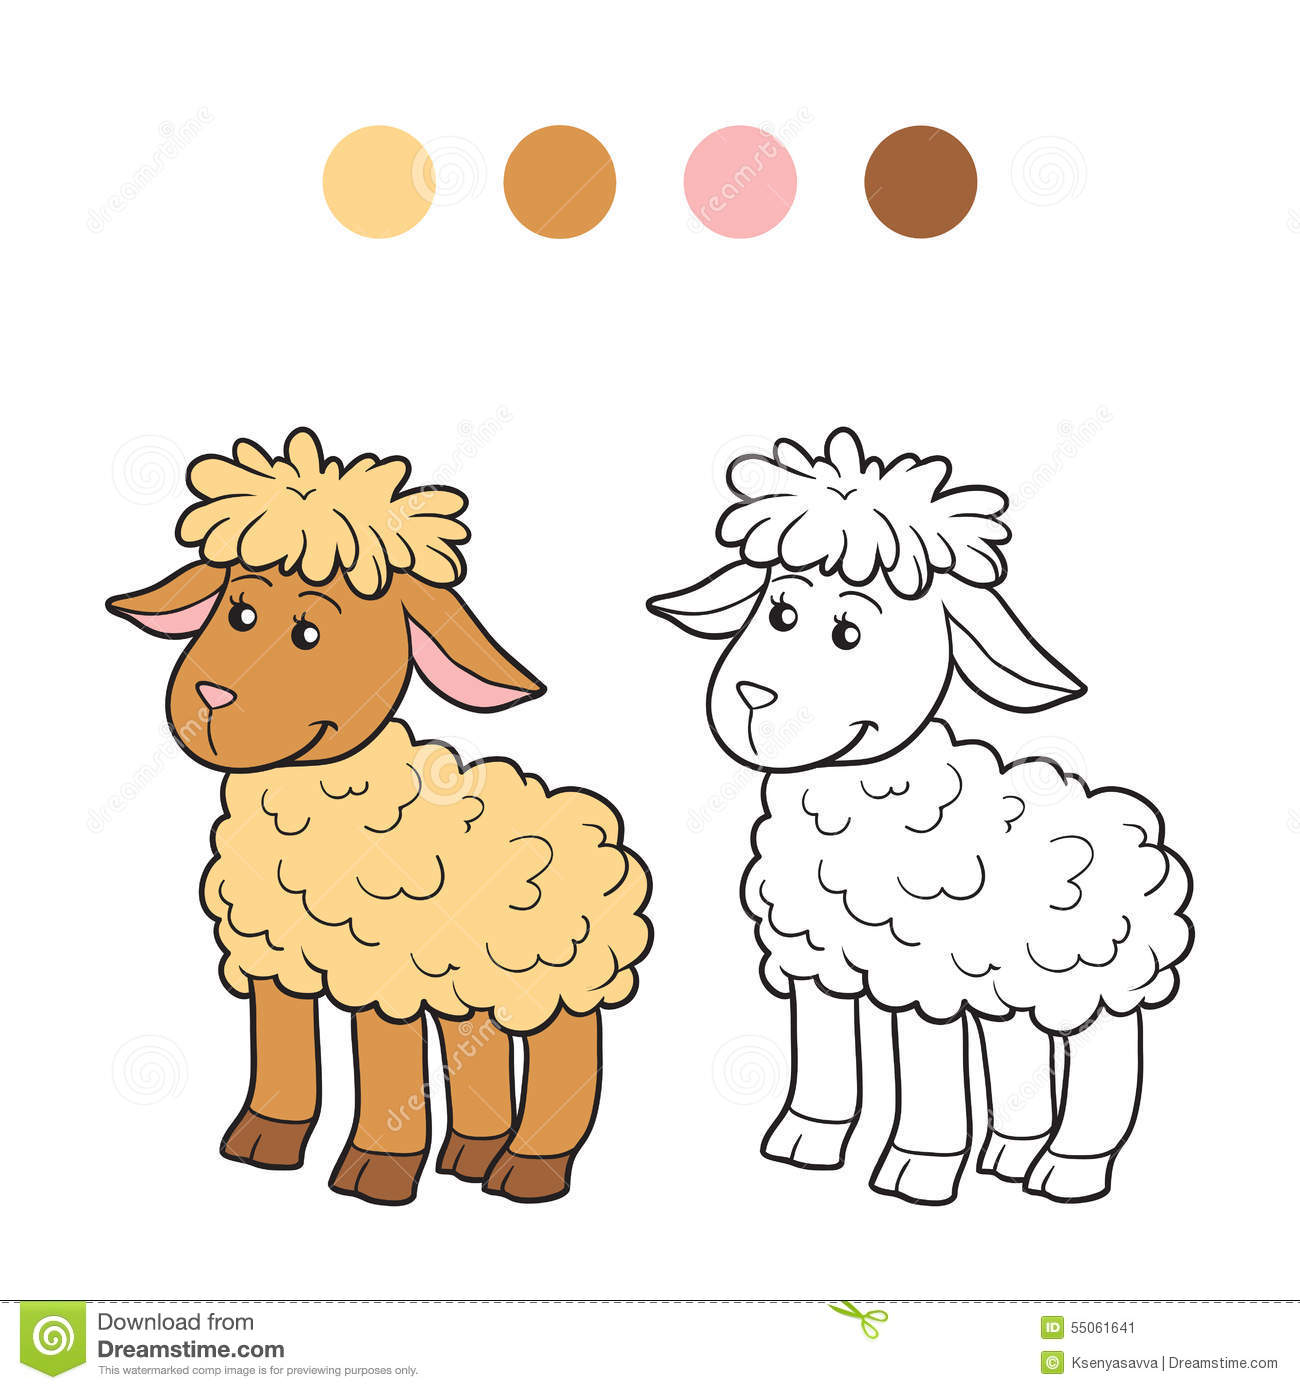 coloring pictures sheep : Coloring Book Sheep